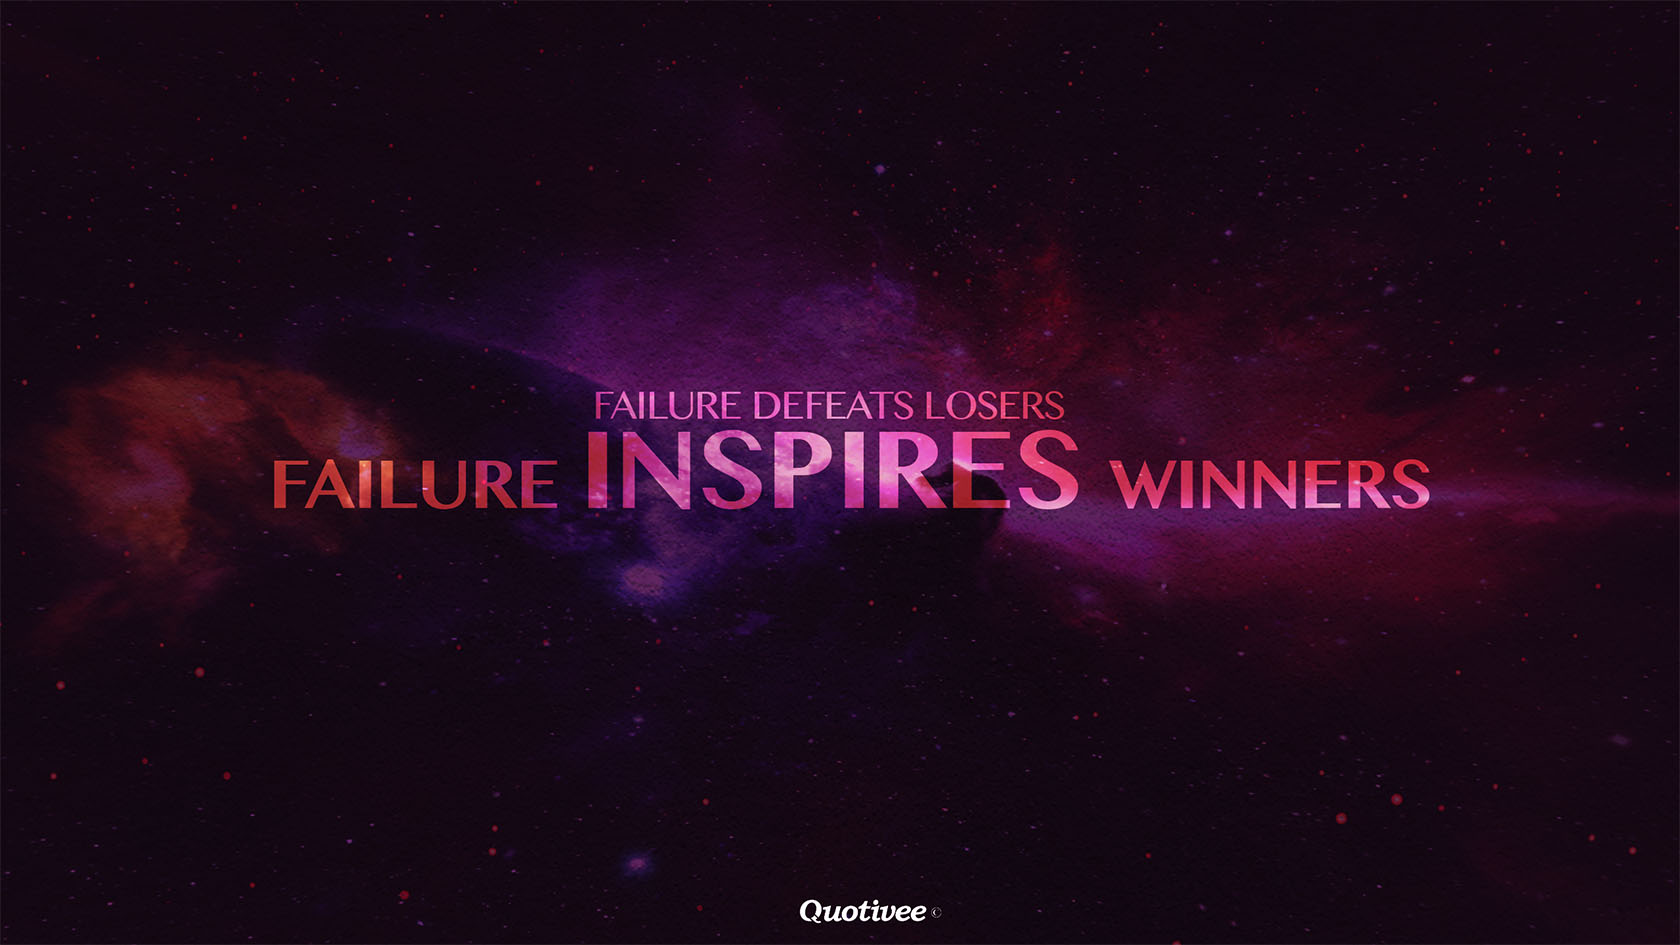 Passion Wallpaper Quote Failure Inspires Winners Inspirational Quotes Quotivee